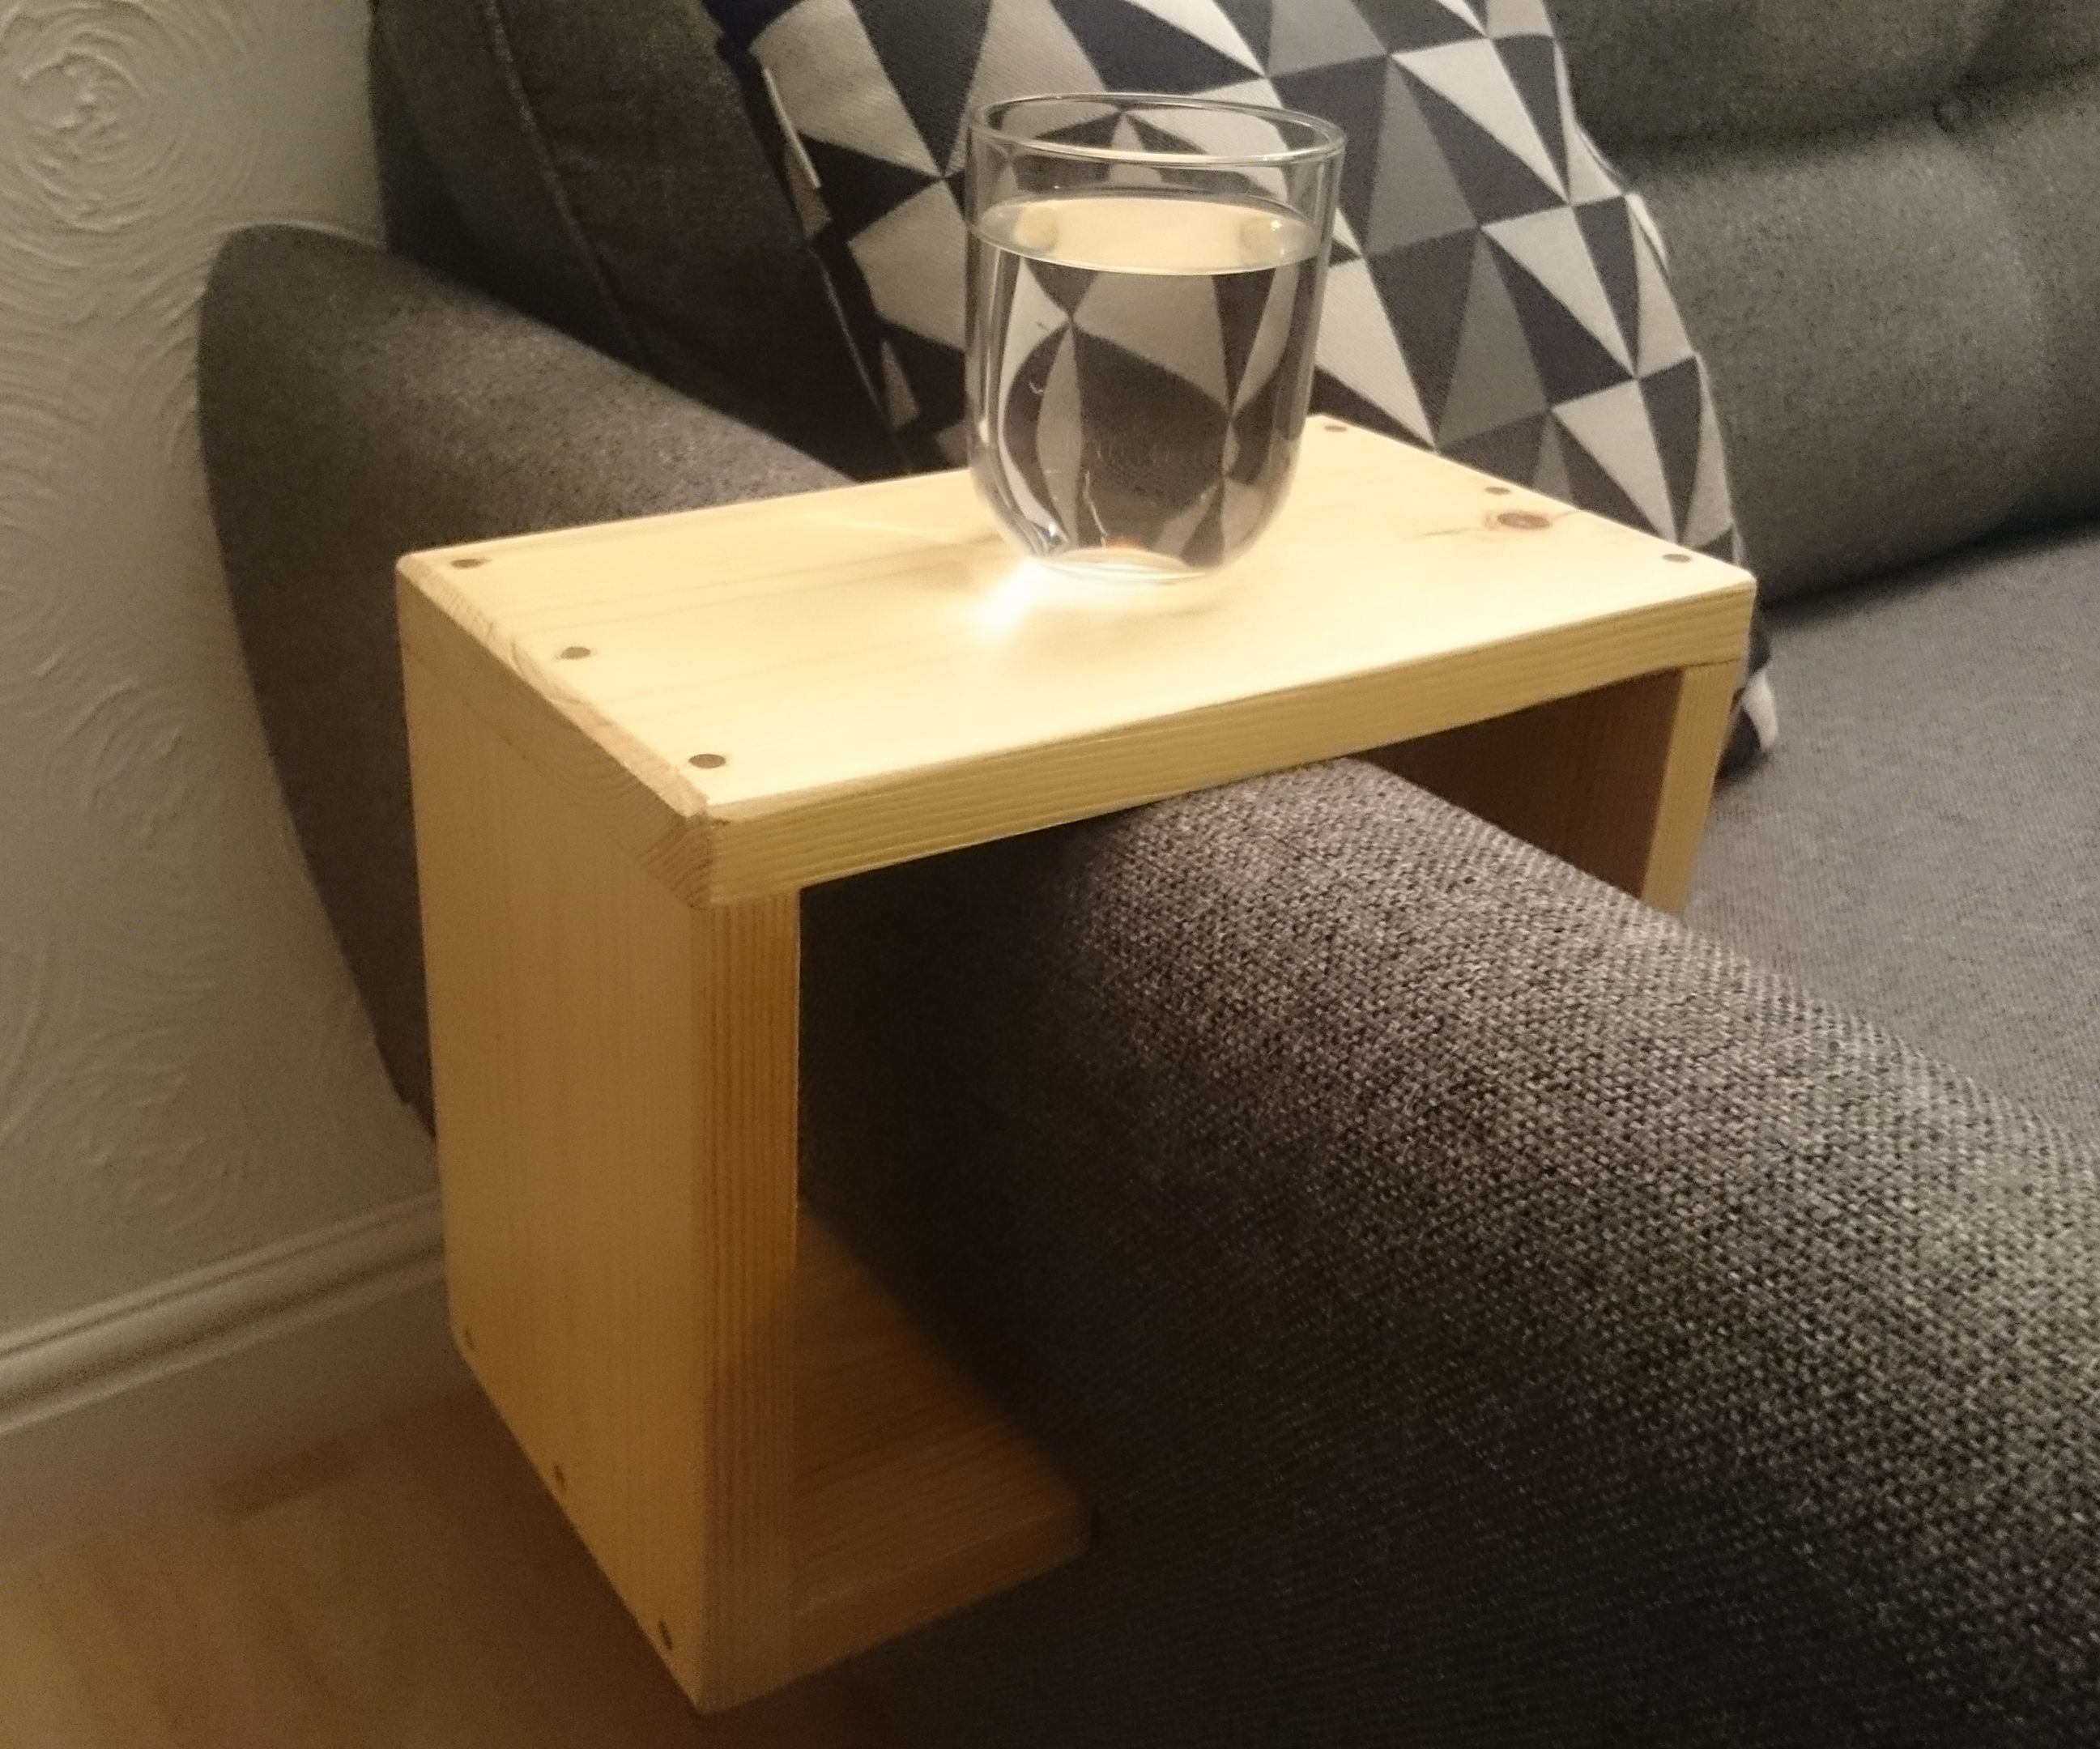 Phenomenal Sofa Arm Table 7 Steps With Pictures Caraccident5 Cool Chair Designs And Ideas Caraccident5Info